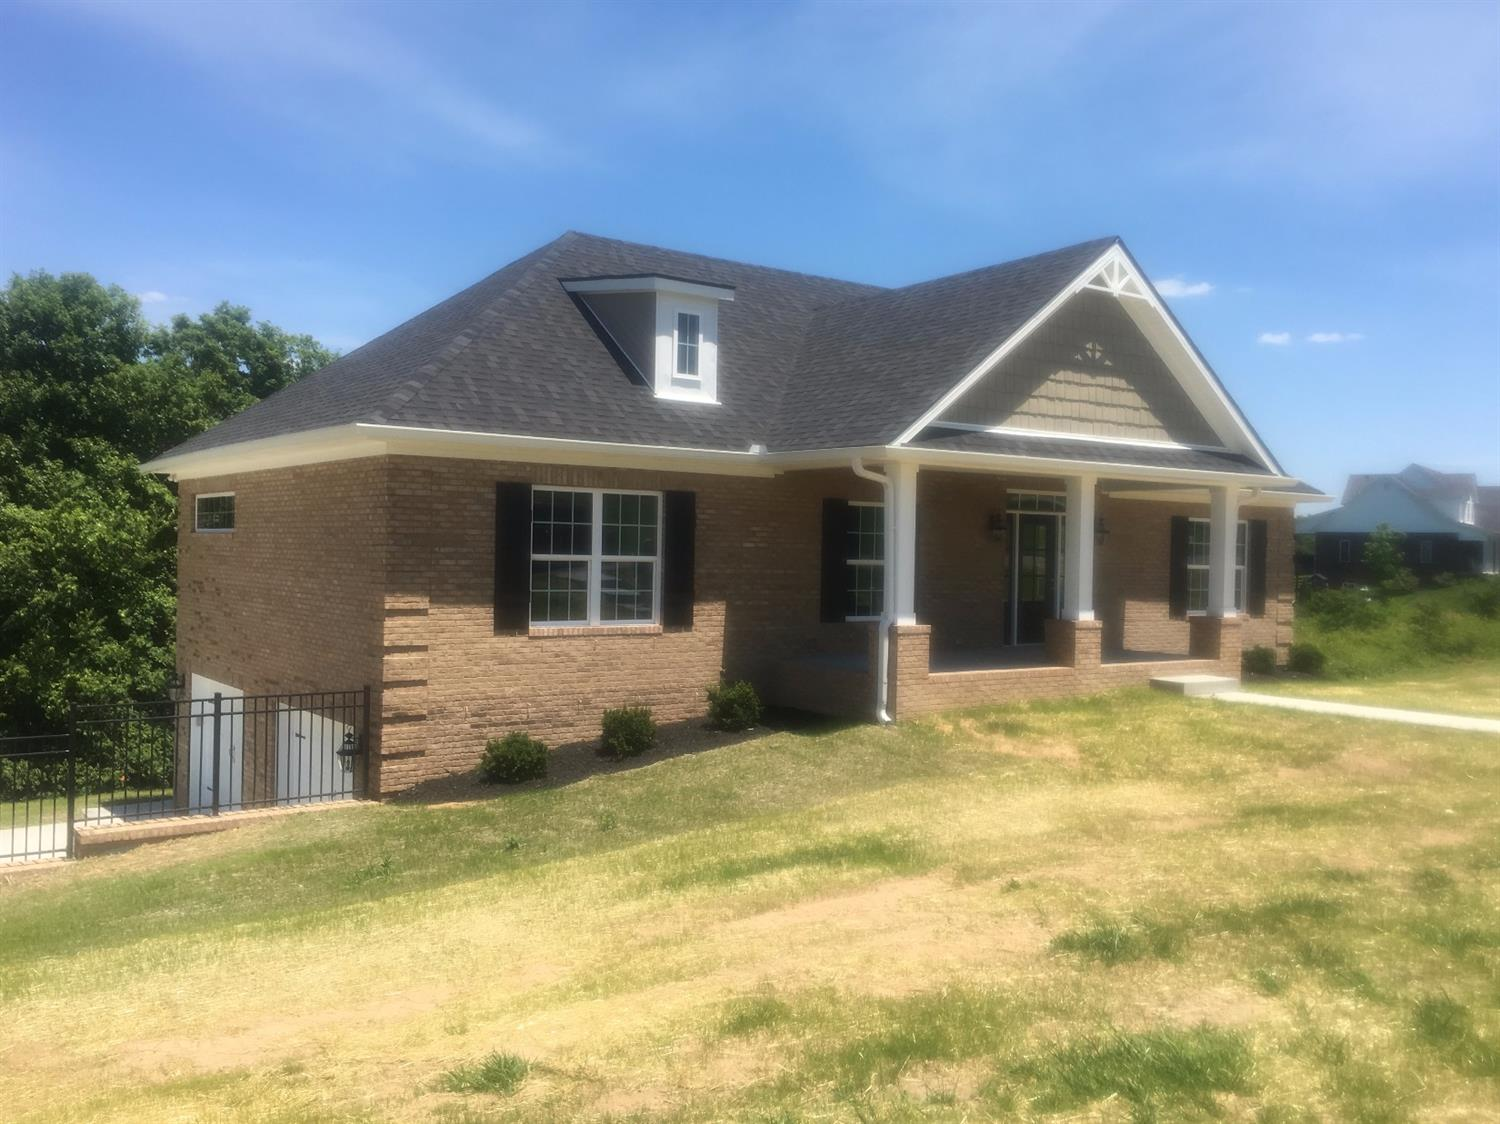 Now%20is%20the%20time%20to%20view%20this%20new%20construction%20ALL%20BRICK%20home%20%20in%20River%20Run%20subdivision!%20Just%2017%20miles%20from%20Man%20O%20War%20in%20Lexington,%20this%20northern%20most%20point%20of%20Garrard%20County%20is%20a%20must%20see!%20This%203%20bedroom,%202%20bath%20all%20brick%20home%20on%20a%20basement%20offers%20so%20much!%20The%20open%20floor%20plan%20features%20a%20huge%20great%20room%20and%20kitchen%20area,%20spacious%20master%20suite,%20two%20bedrooms%20with%20second%20full%20bath,%20and%20laundry%20room%20on%20first%20floor.%20Upgrades%20to%20include%20hardwood%20flooring,%20ceramic%20tile,%20granite%20countertops,%20custom%20cabinetry,%20upgraded%20trim%20package%20and%20MORE!%20Basement%20has%20rough%20in%20for%20third%20full%20bath.%20%20Patio%20and%20decking%20that%20takes%20advantage%20of%20view%20of%20woods%20and%20wildlife.